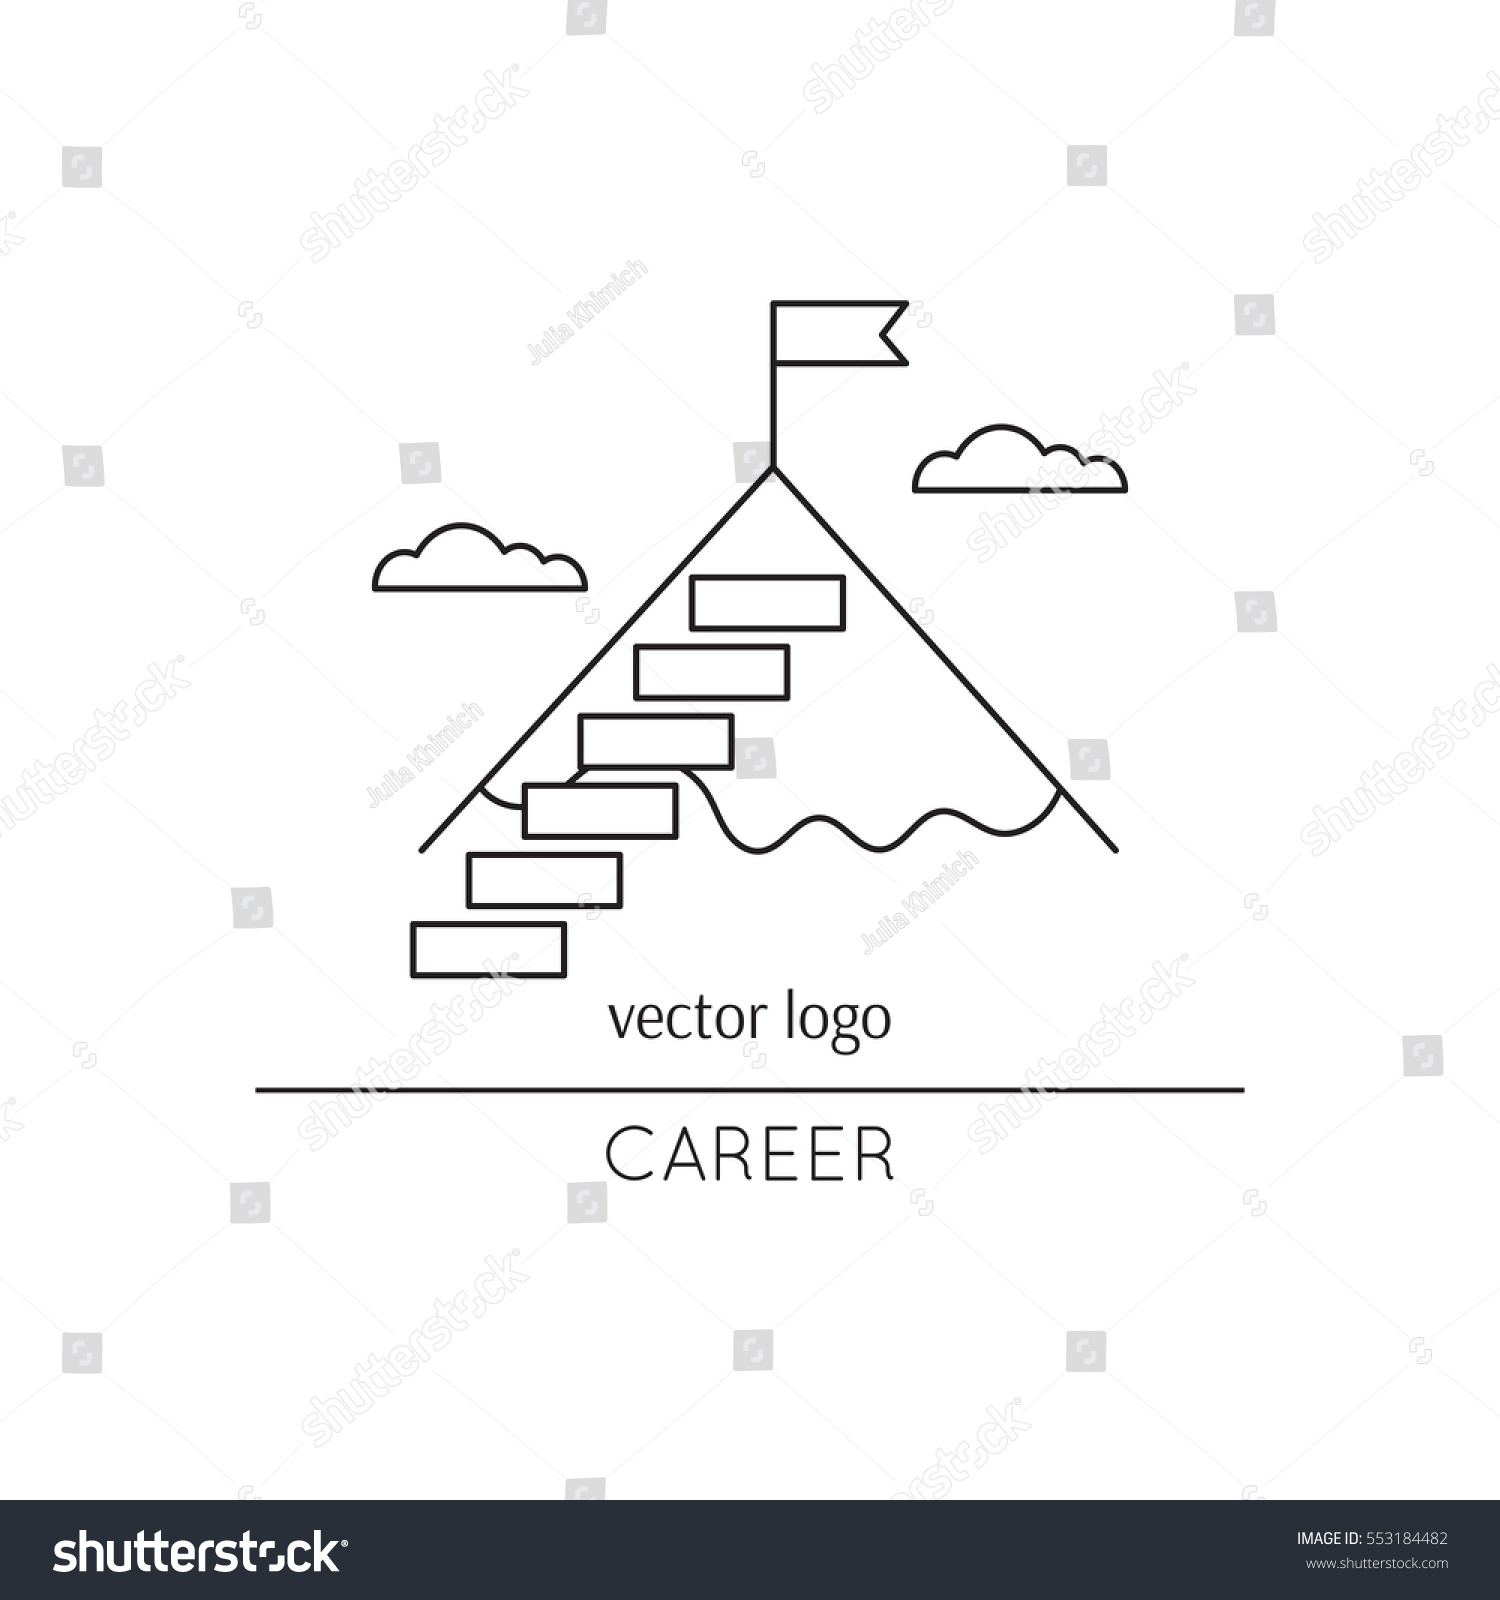 vector thin line icon stairs mountain stock vector  vector thin line icon stairs to the mountain top metaphor of achieving goals and